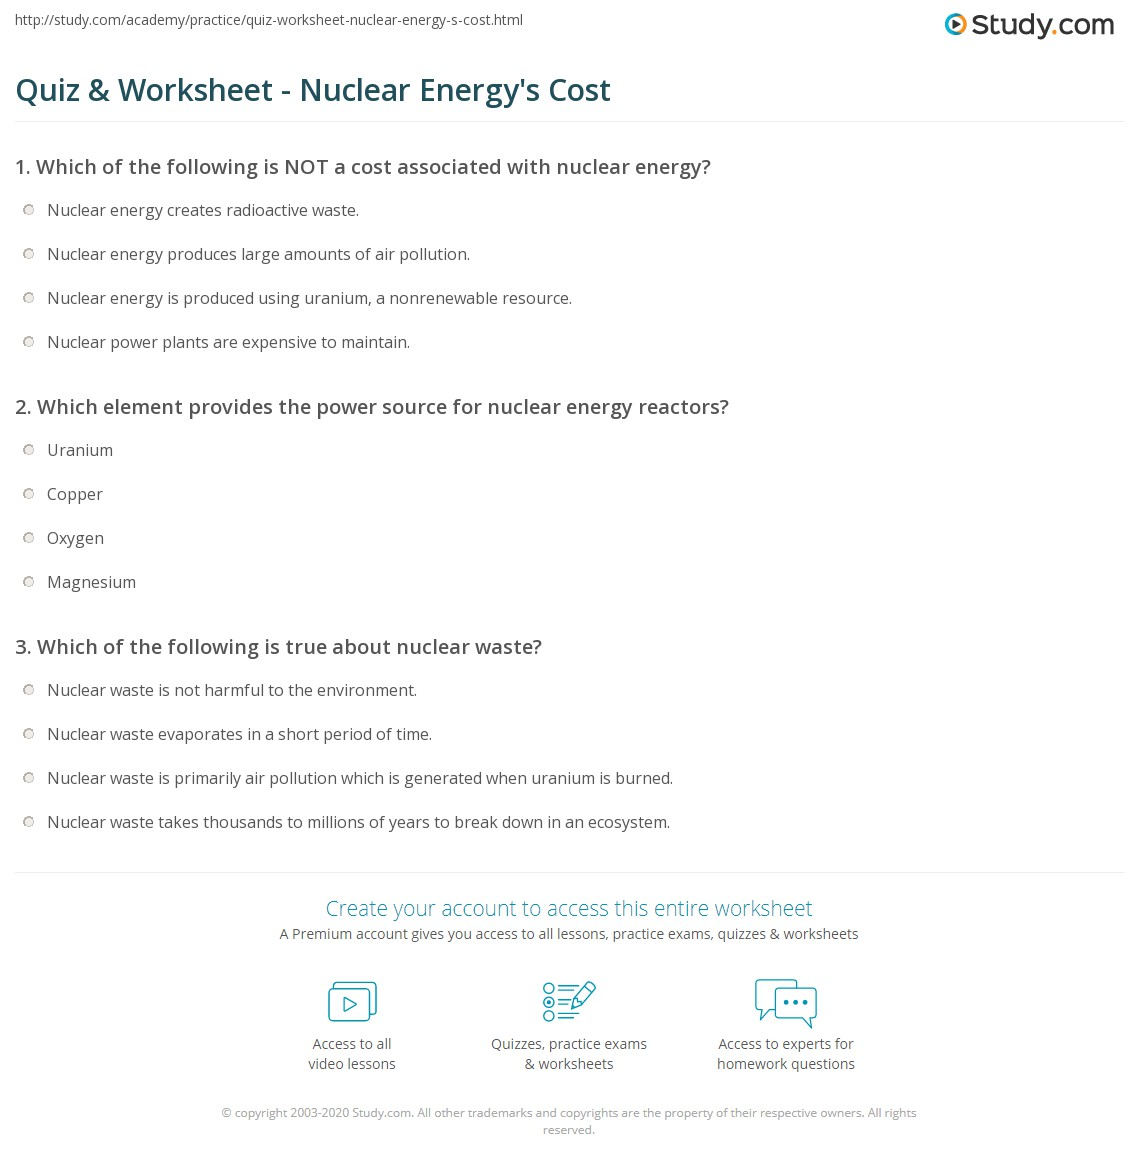 Quiz & Worksheet - Nuclear Energy's Cost | Study.com